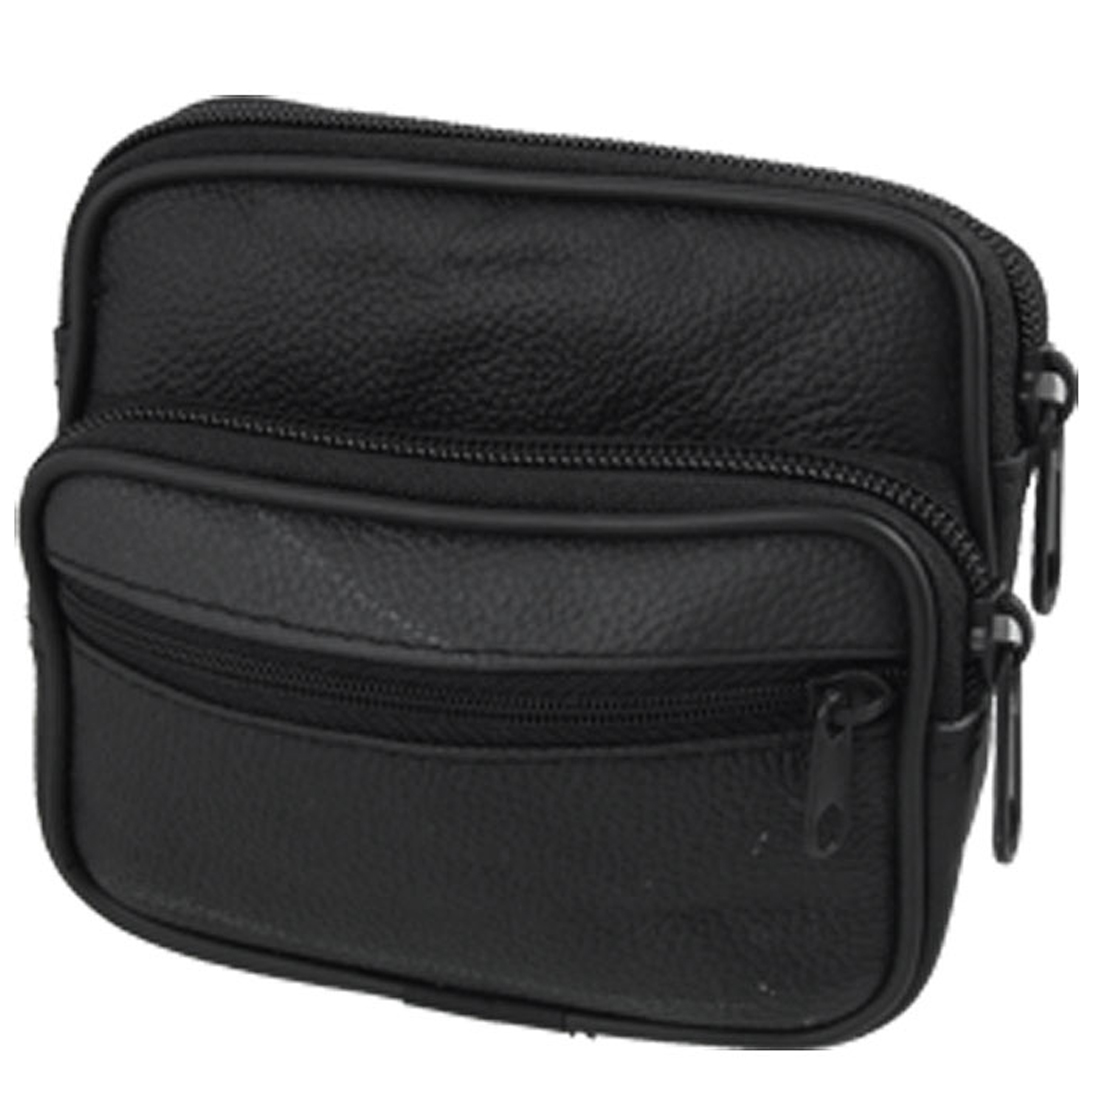 Digital Camera Cell Phone Faux Leather Waist Bag Black